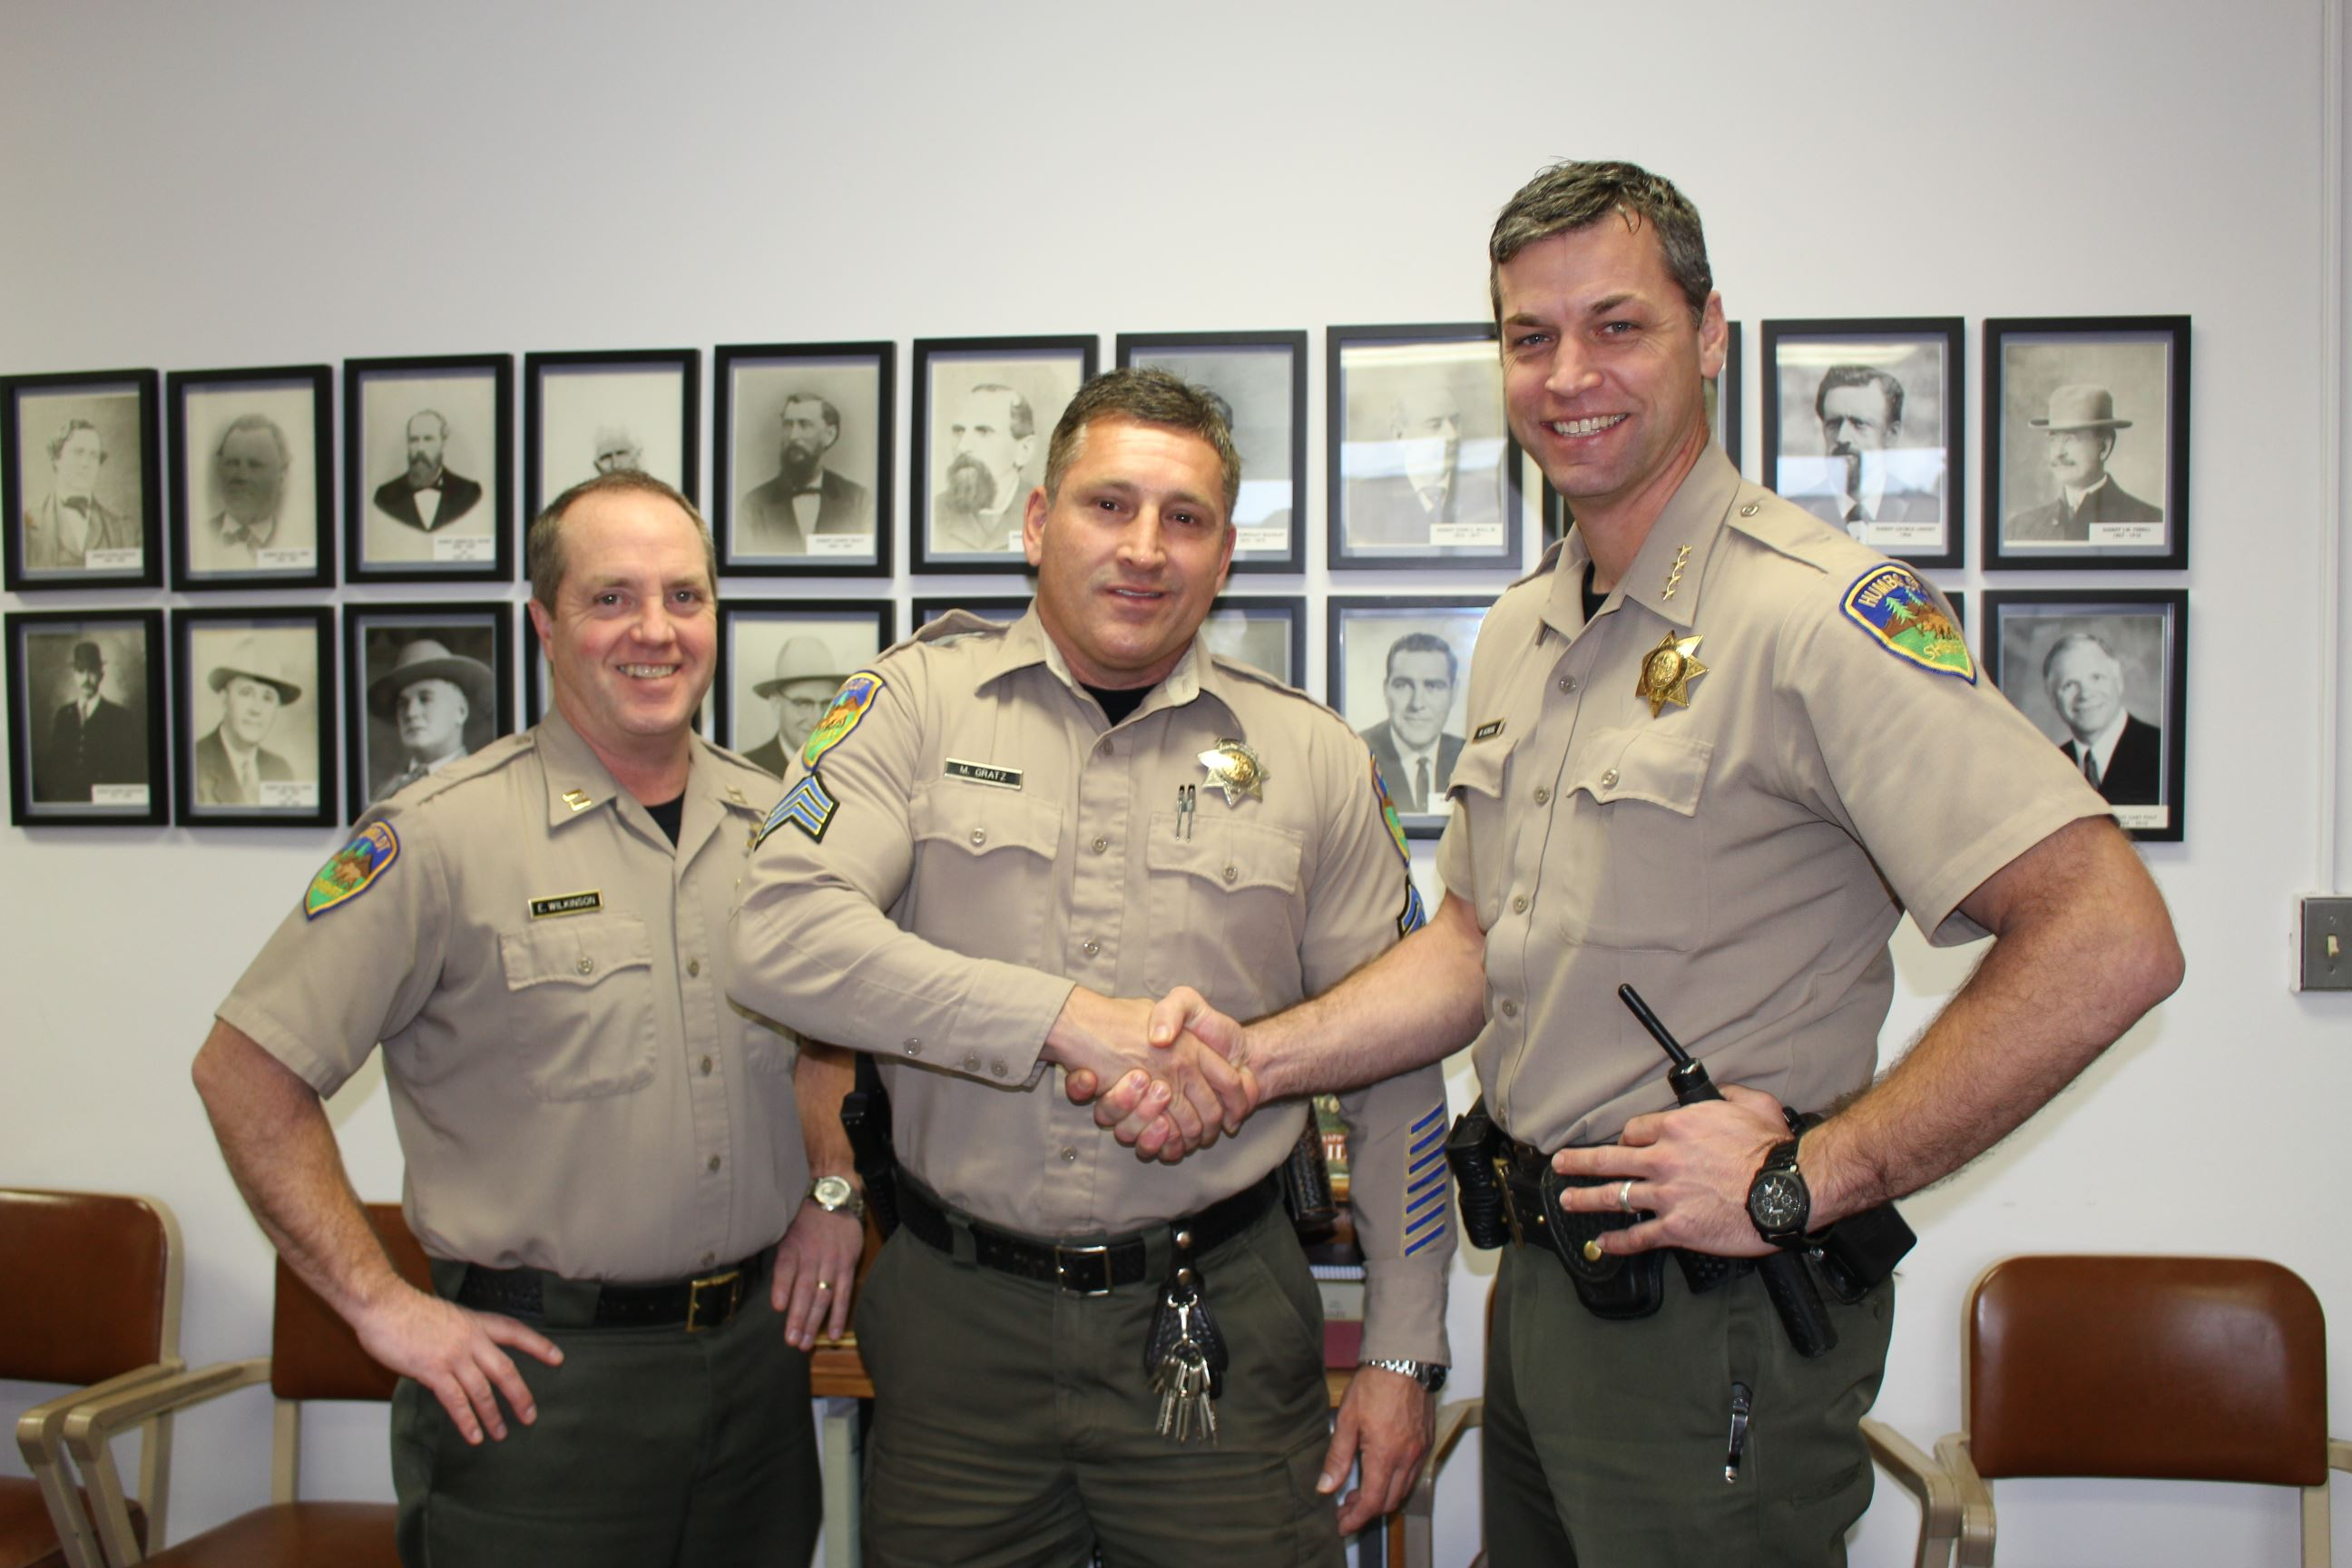 Photo of the Sheriff Honsal Shaking Gratz&#39s hand